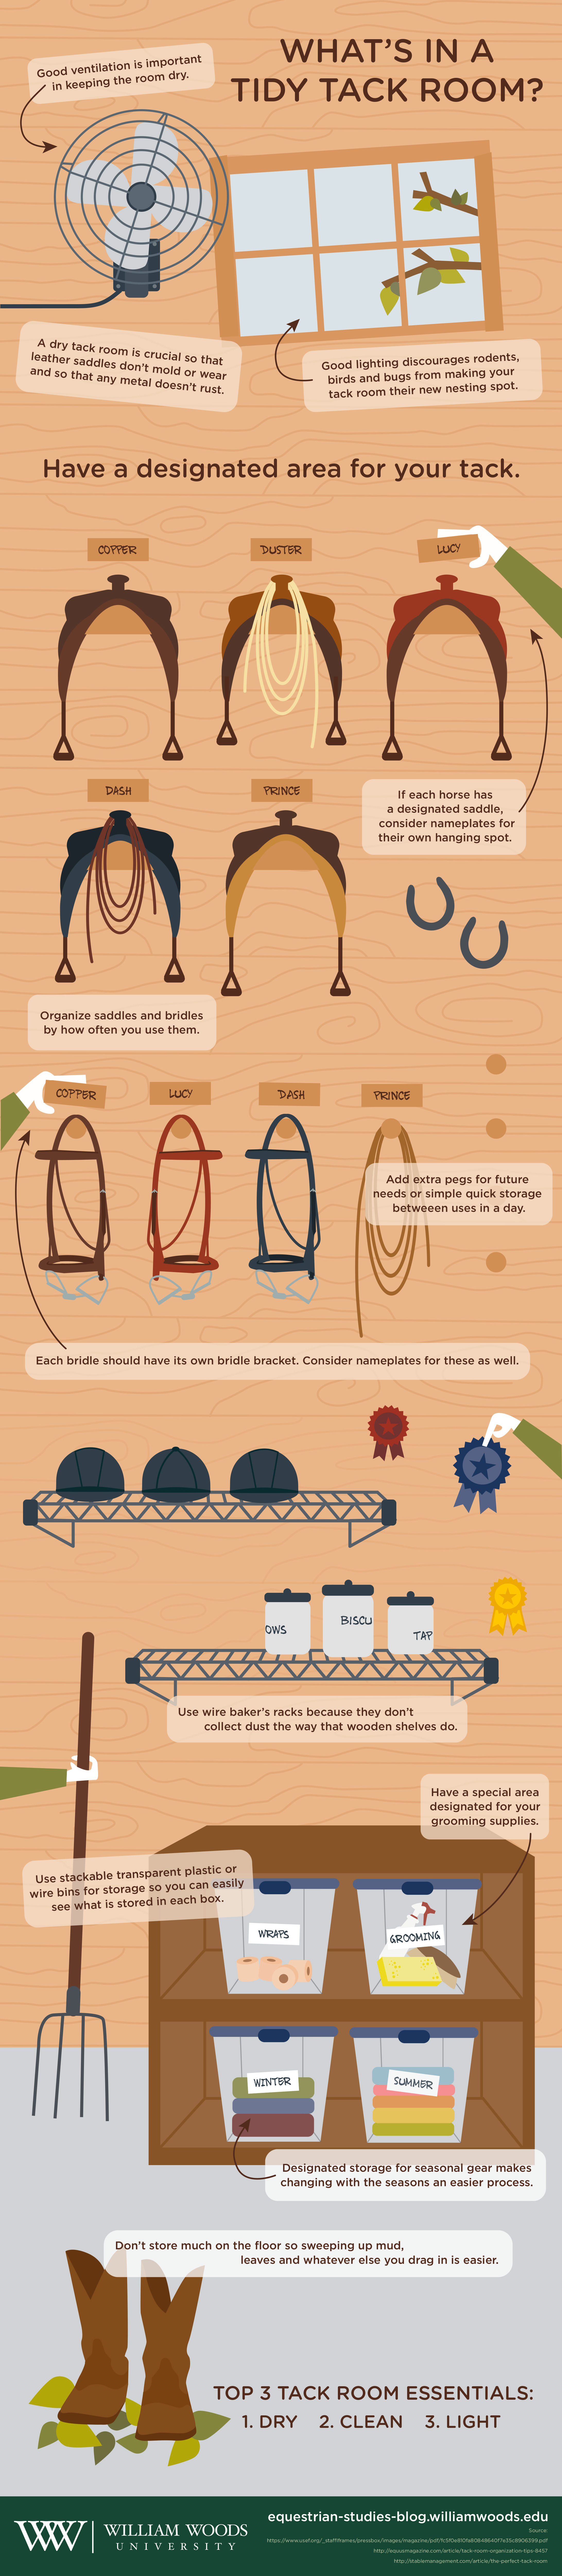 This infographic identifies key tips for keeping a tidy tack room to store saddles, bridles and other equestrian equipment. It's essential to keep a tack room dry, clean, and light. Proper ventilation combats dampness, which may mold leather and tarnish metal. Adding wire shelves and designated storage organizes equipment for ease. Good lighting will keep your tack room free of pests, like bugs, birds and rodents.